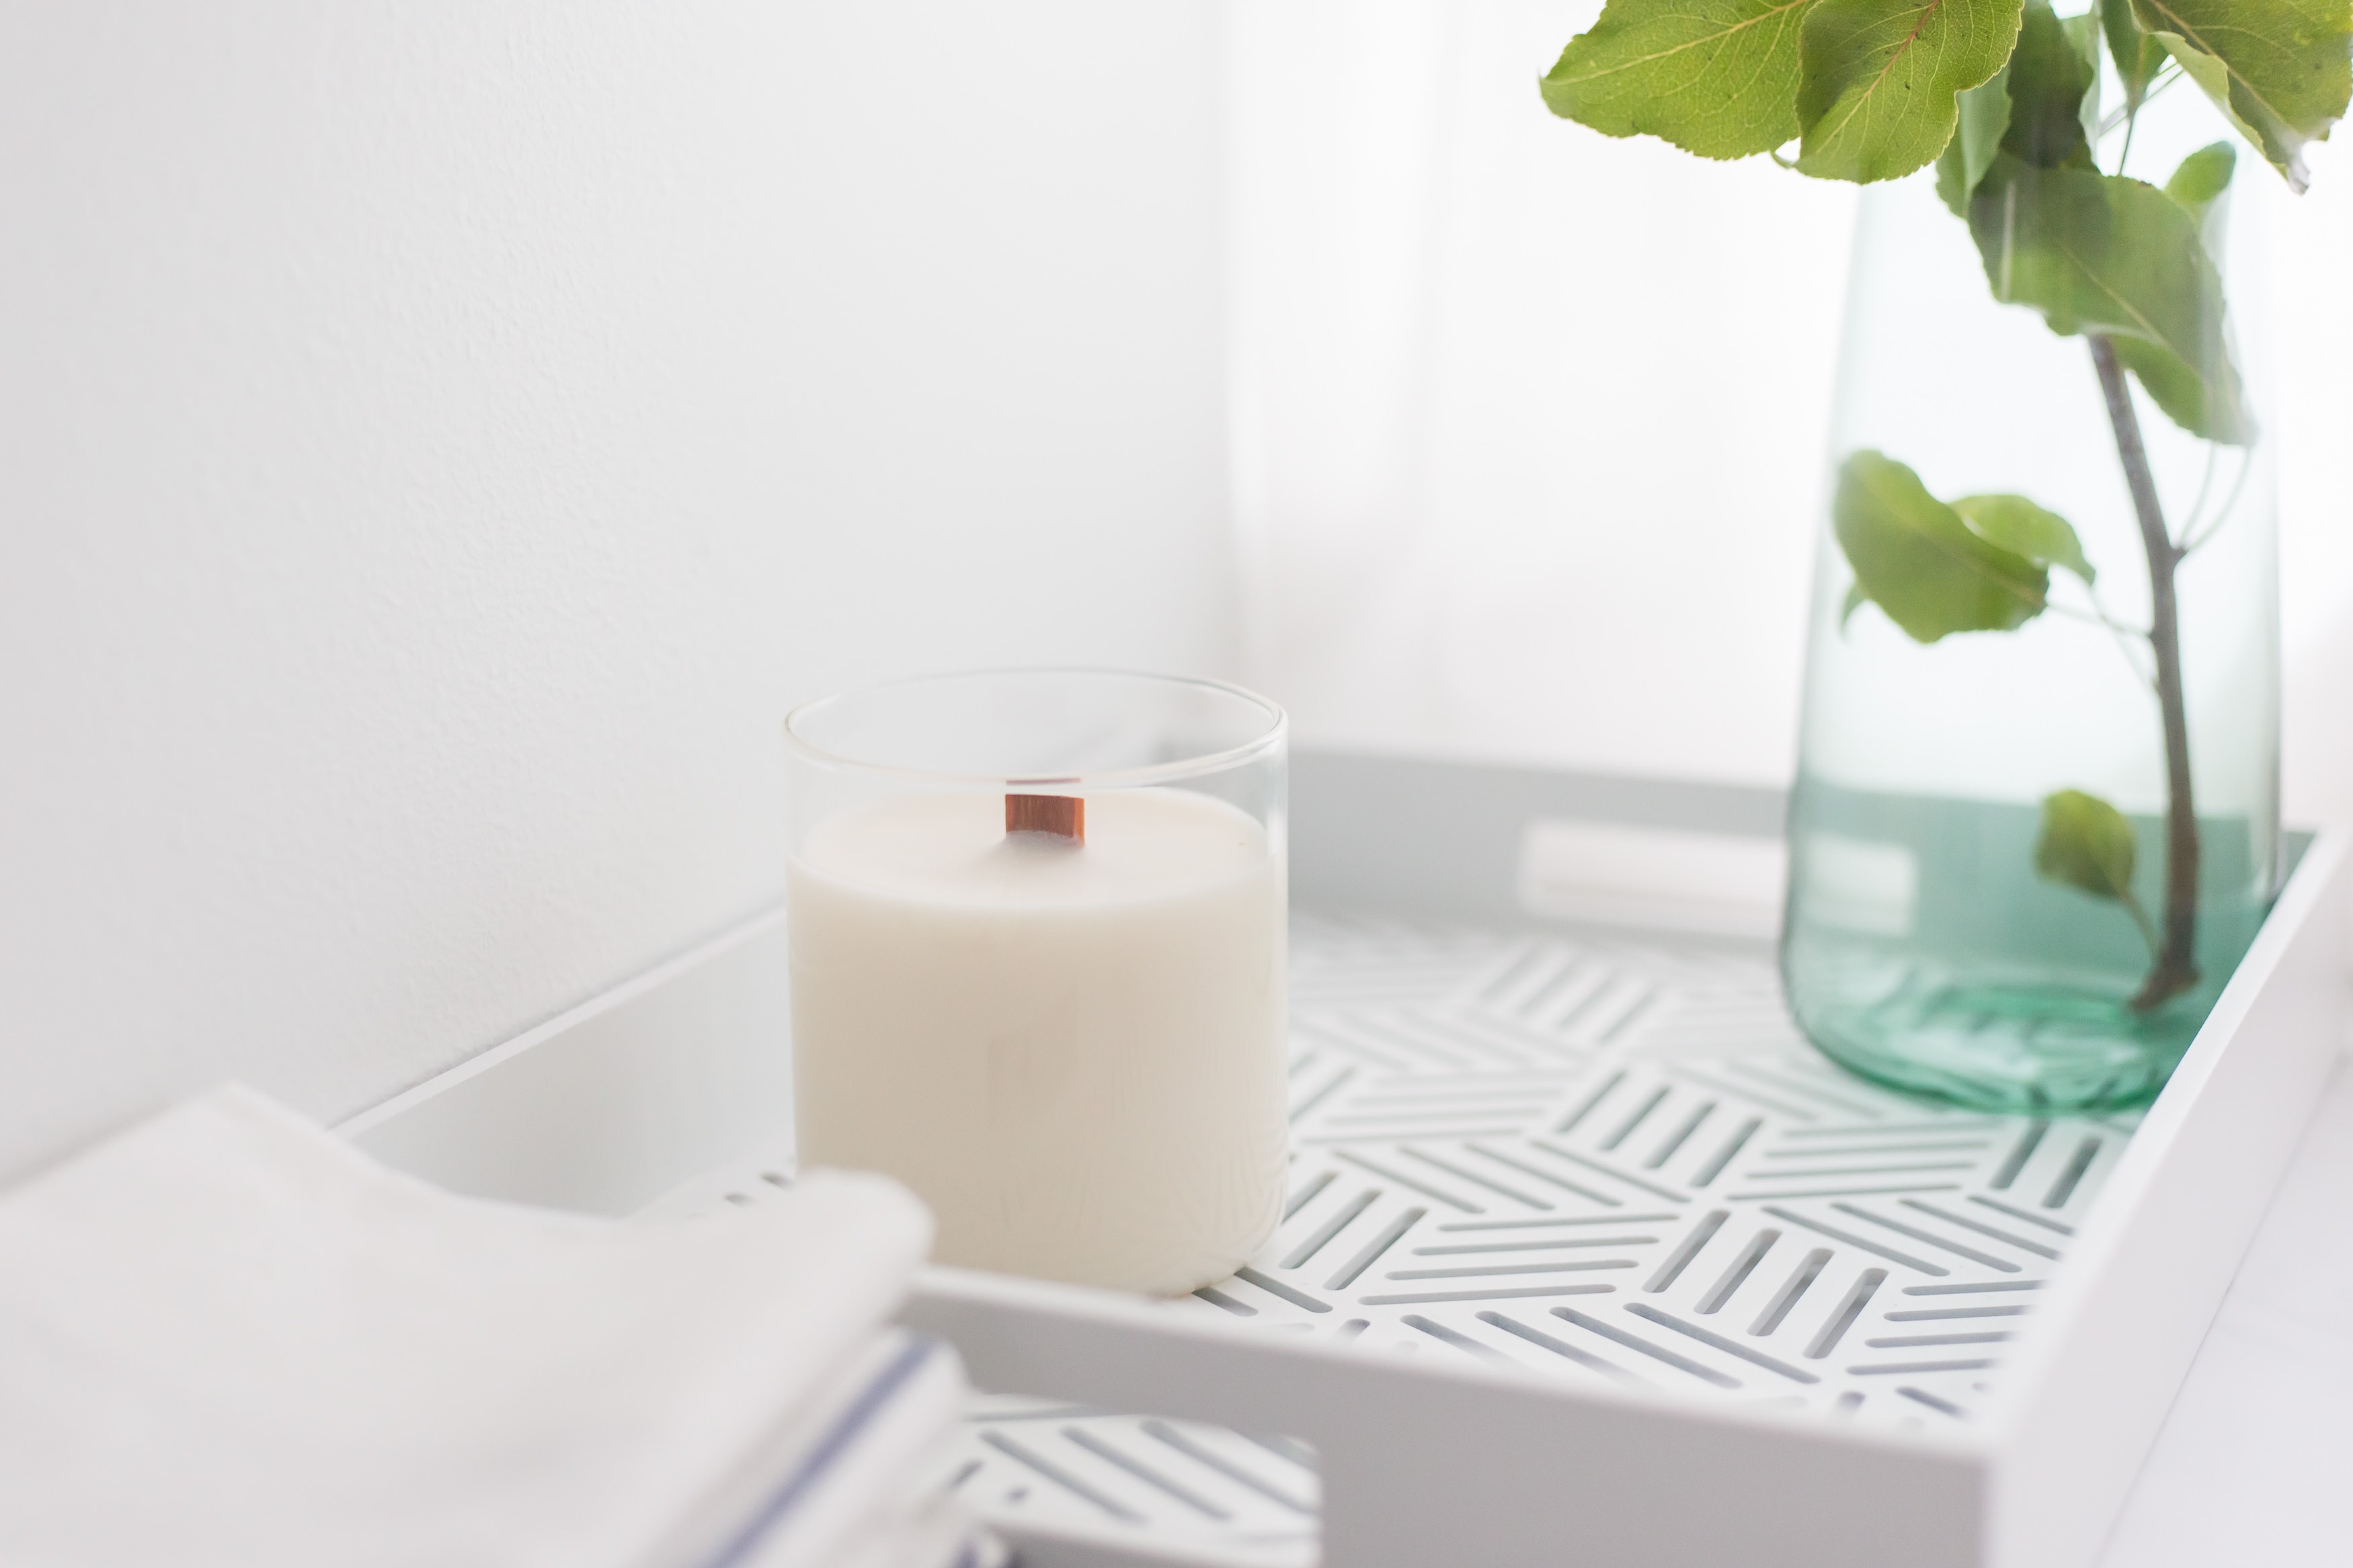 White candle on a white tray with a teal vase sitting next to it